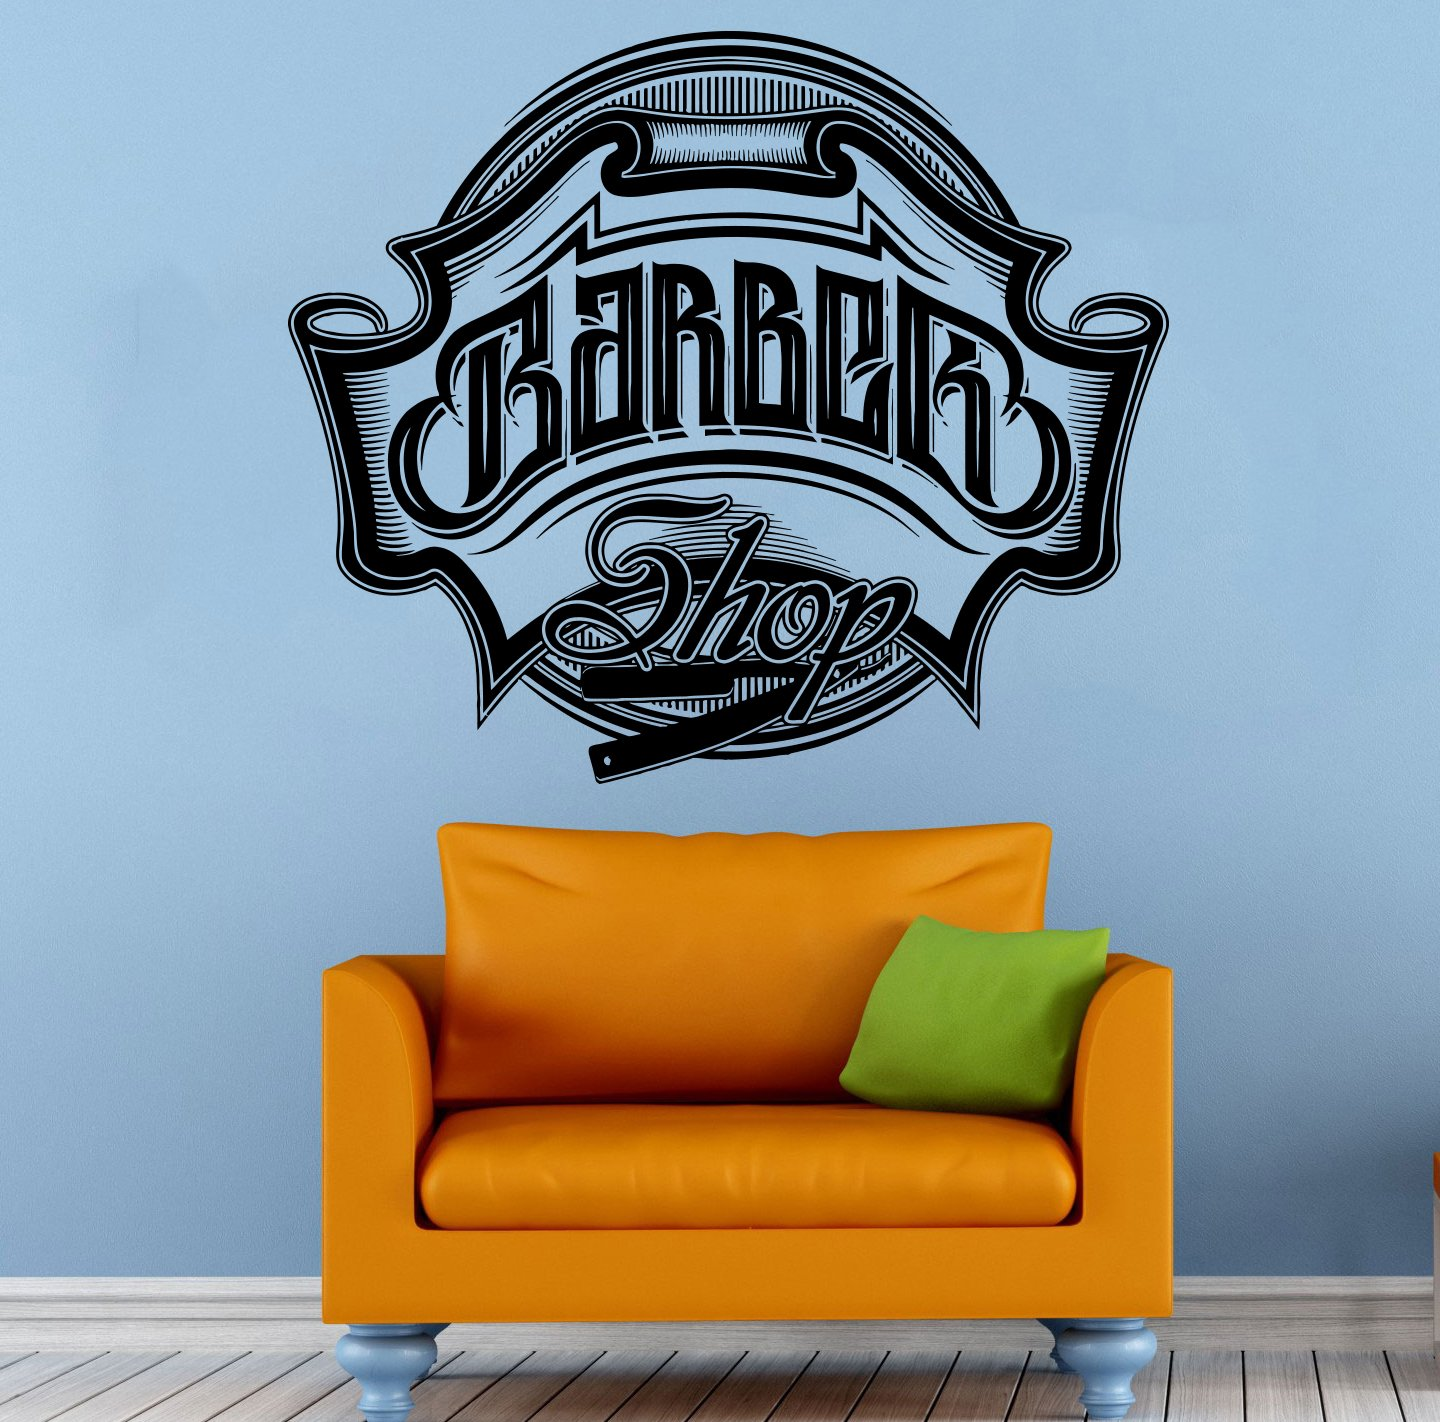 barber shop emblem wall vinyl decal housewares barbershop logo art barber shop emblem wall vinyl decal housewares barbershop logo art modern interior decor hairdressing sticker mural 016bs amazon com